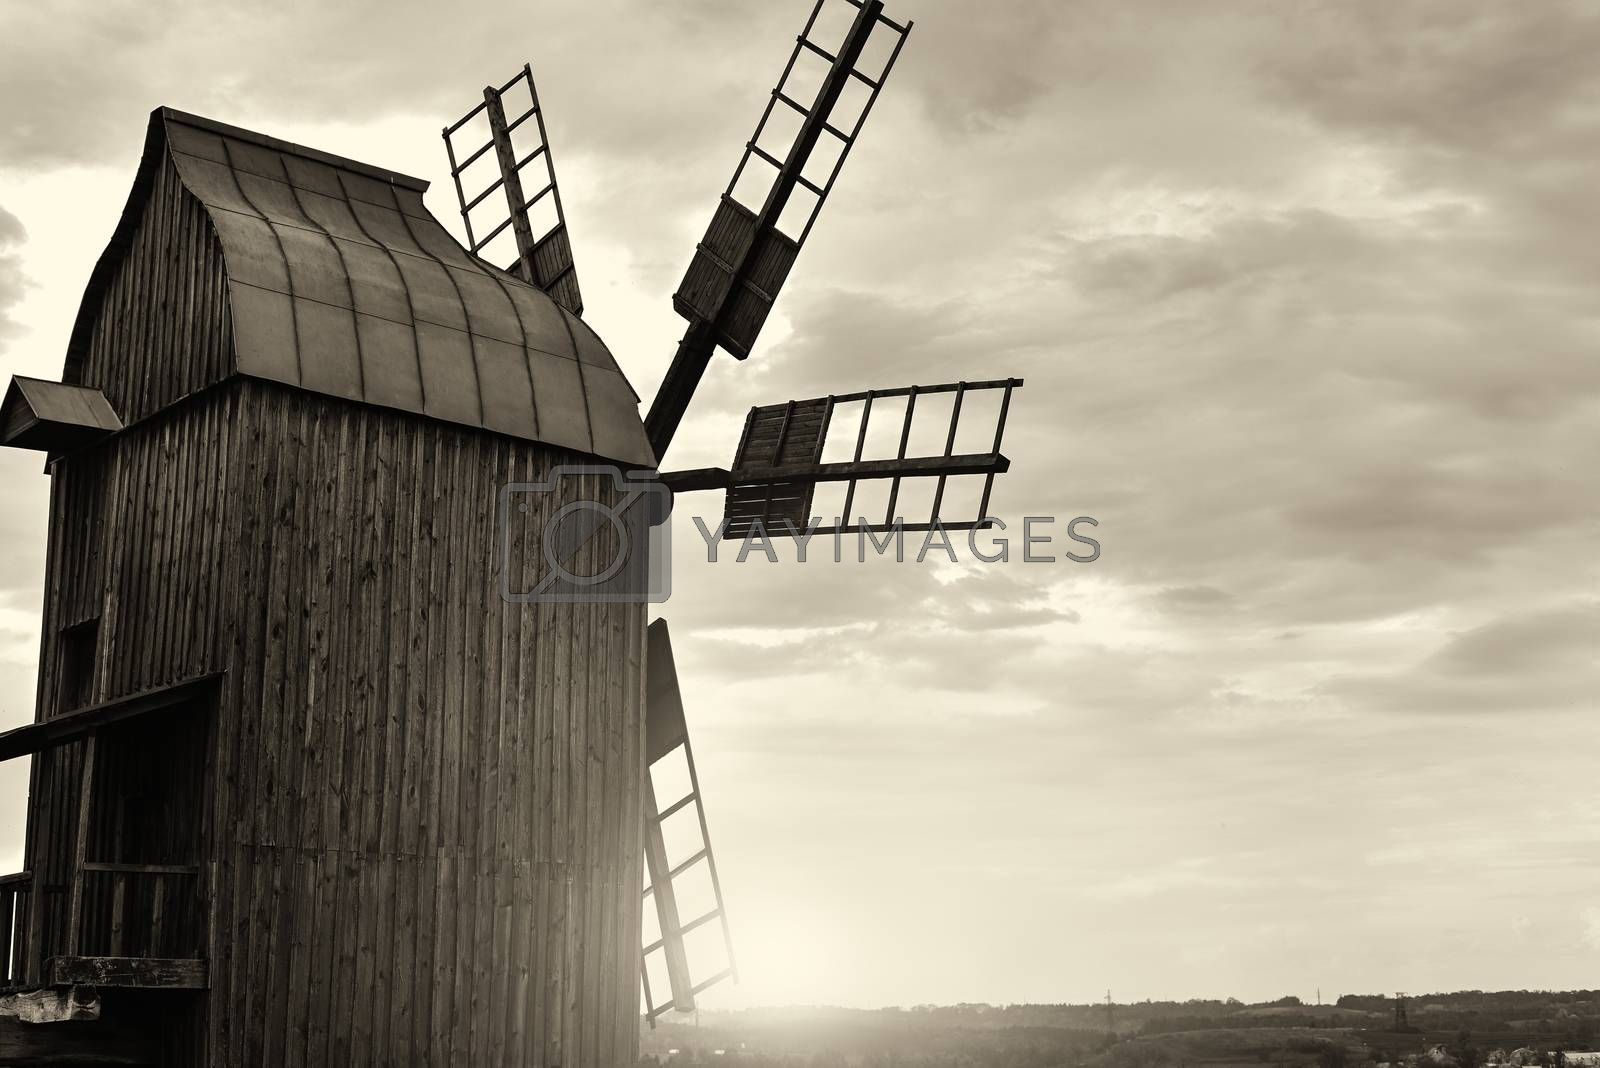 Old windmill standing alone in the field with the blue sky. sepia filter